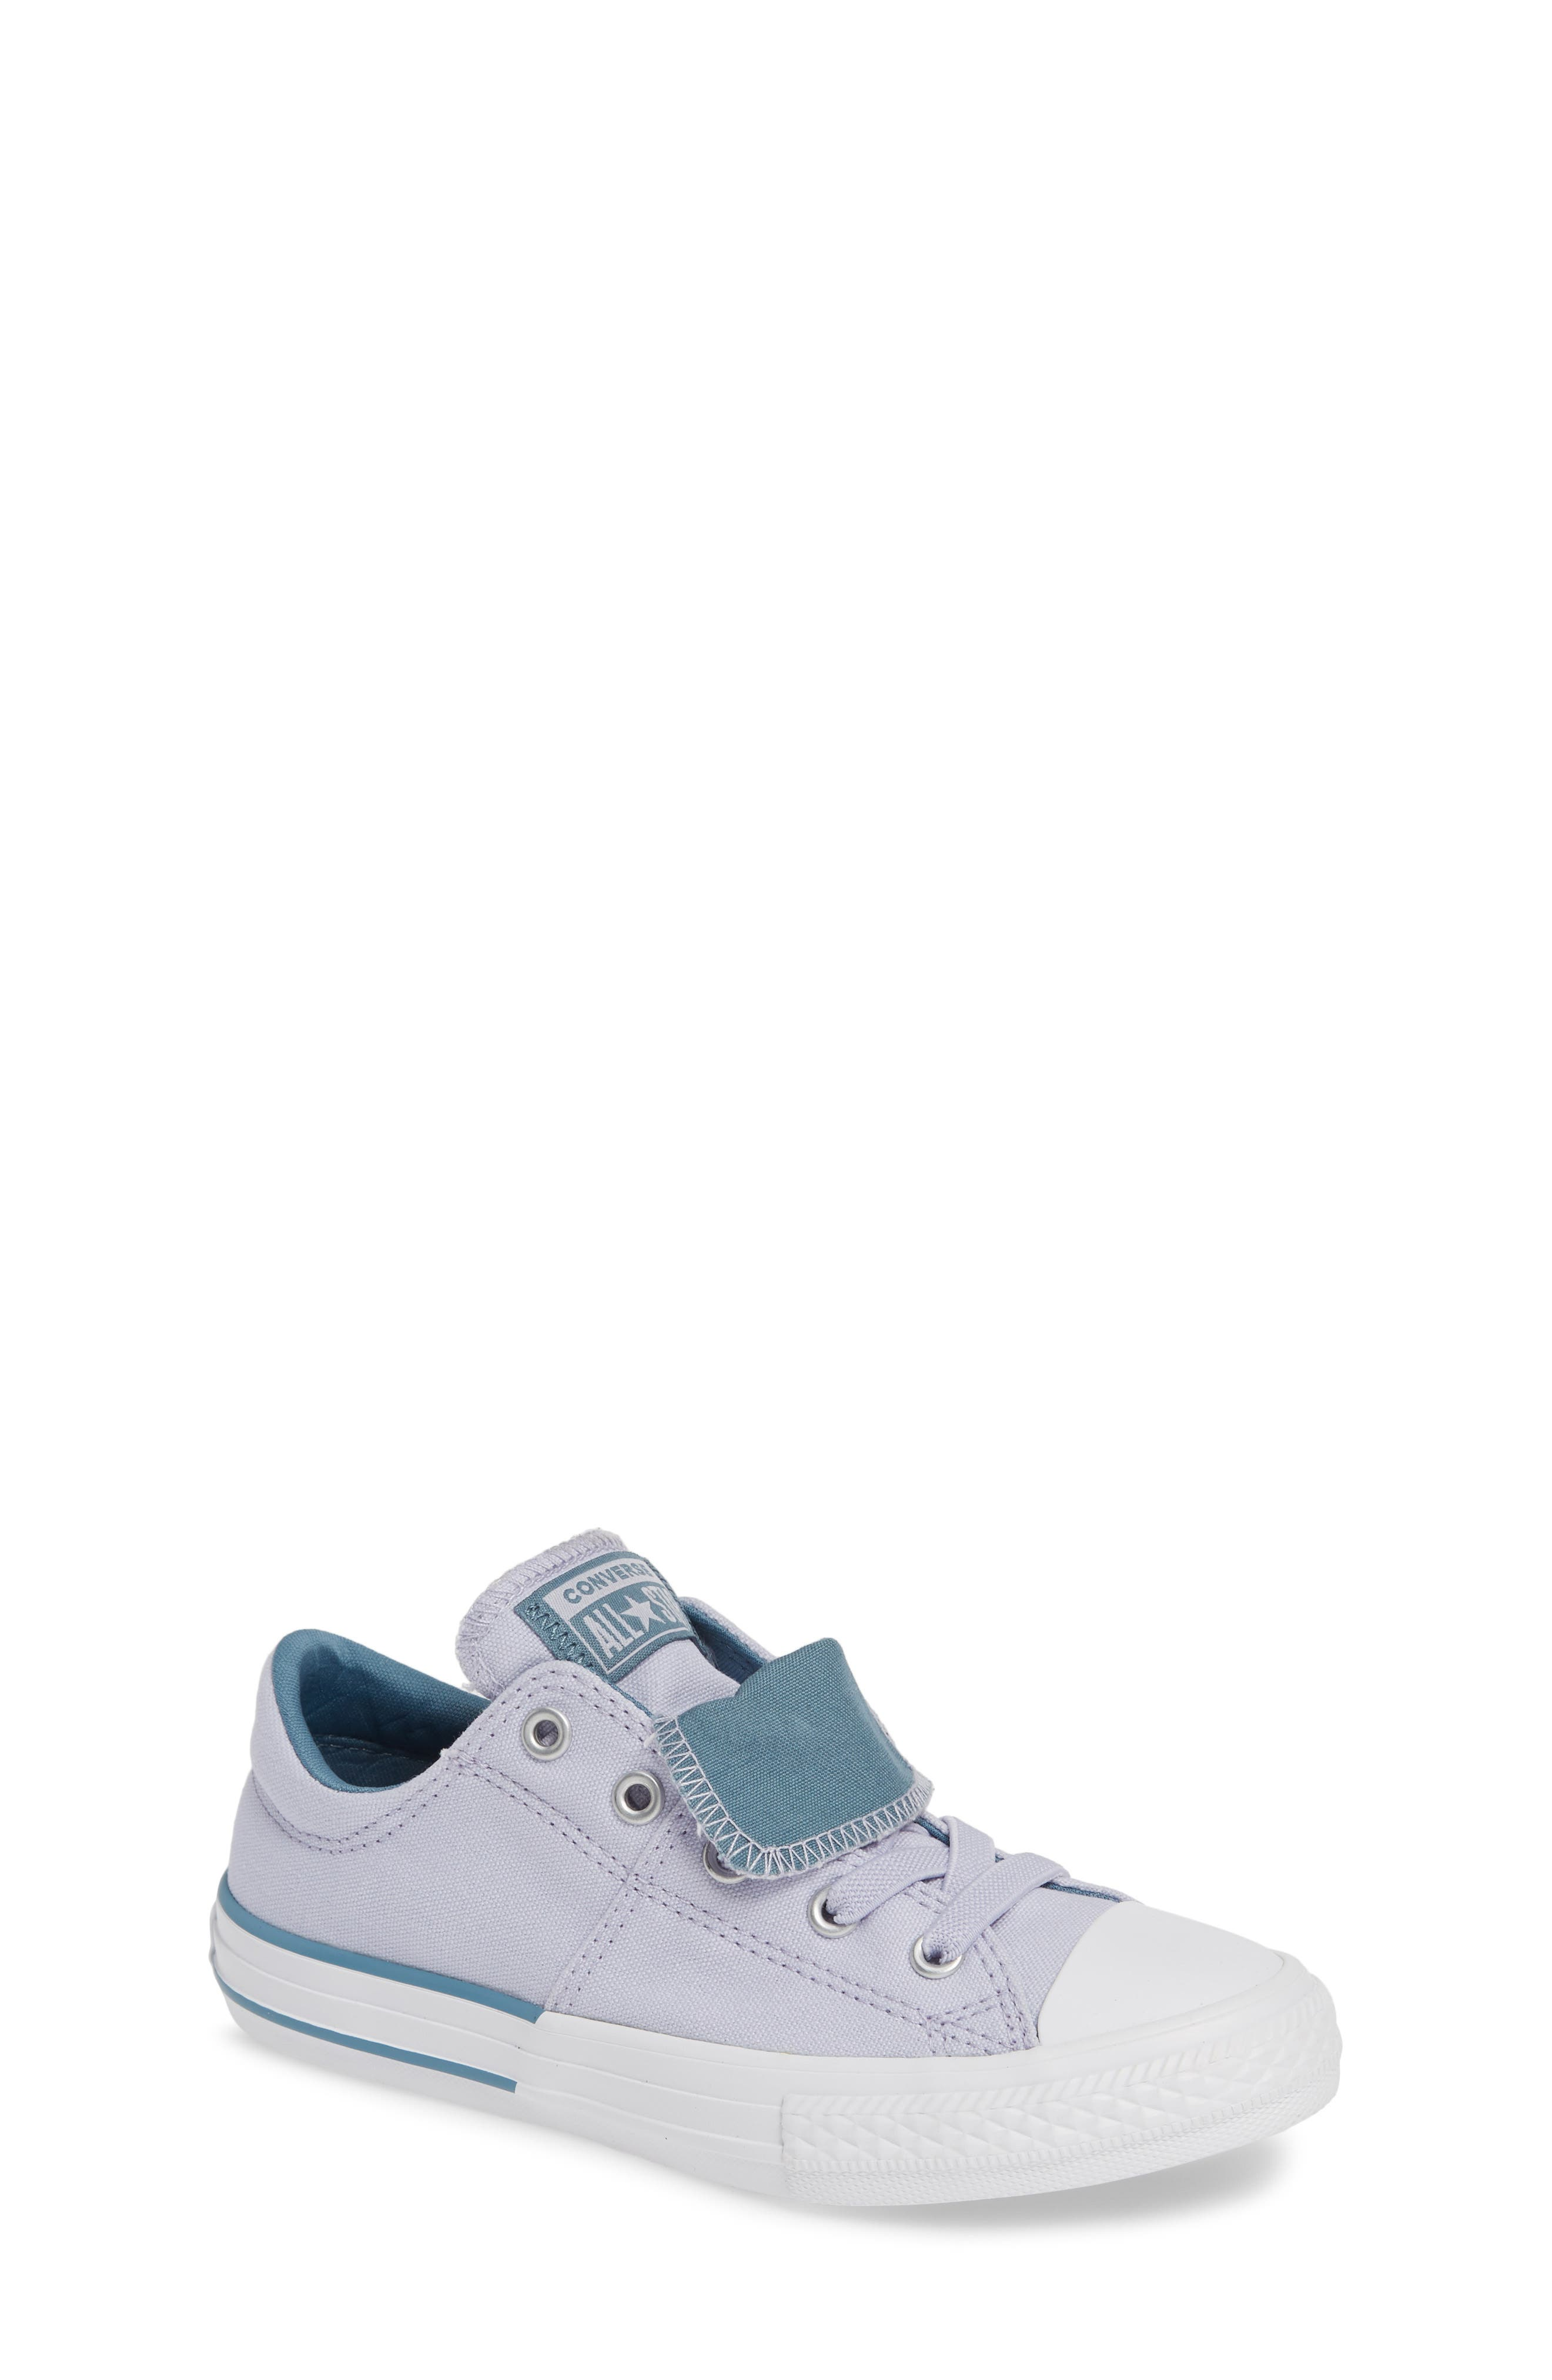 CONVERSE, Chuck Taylor<sup>®</sup> All Star<sup>®</sup> Maddie Double Tongue Sneaker, Main thumbnail 1, color, OXYGEN PURPLE/ CELESTIAL TEAL